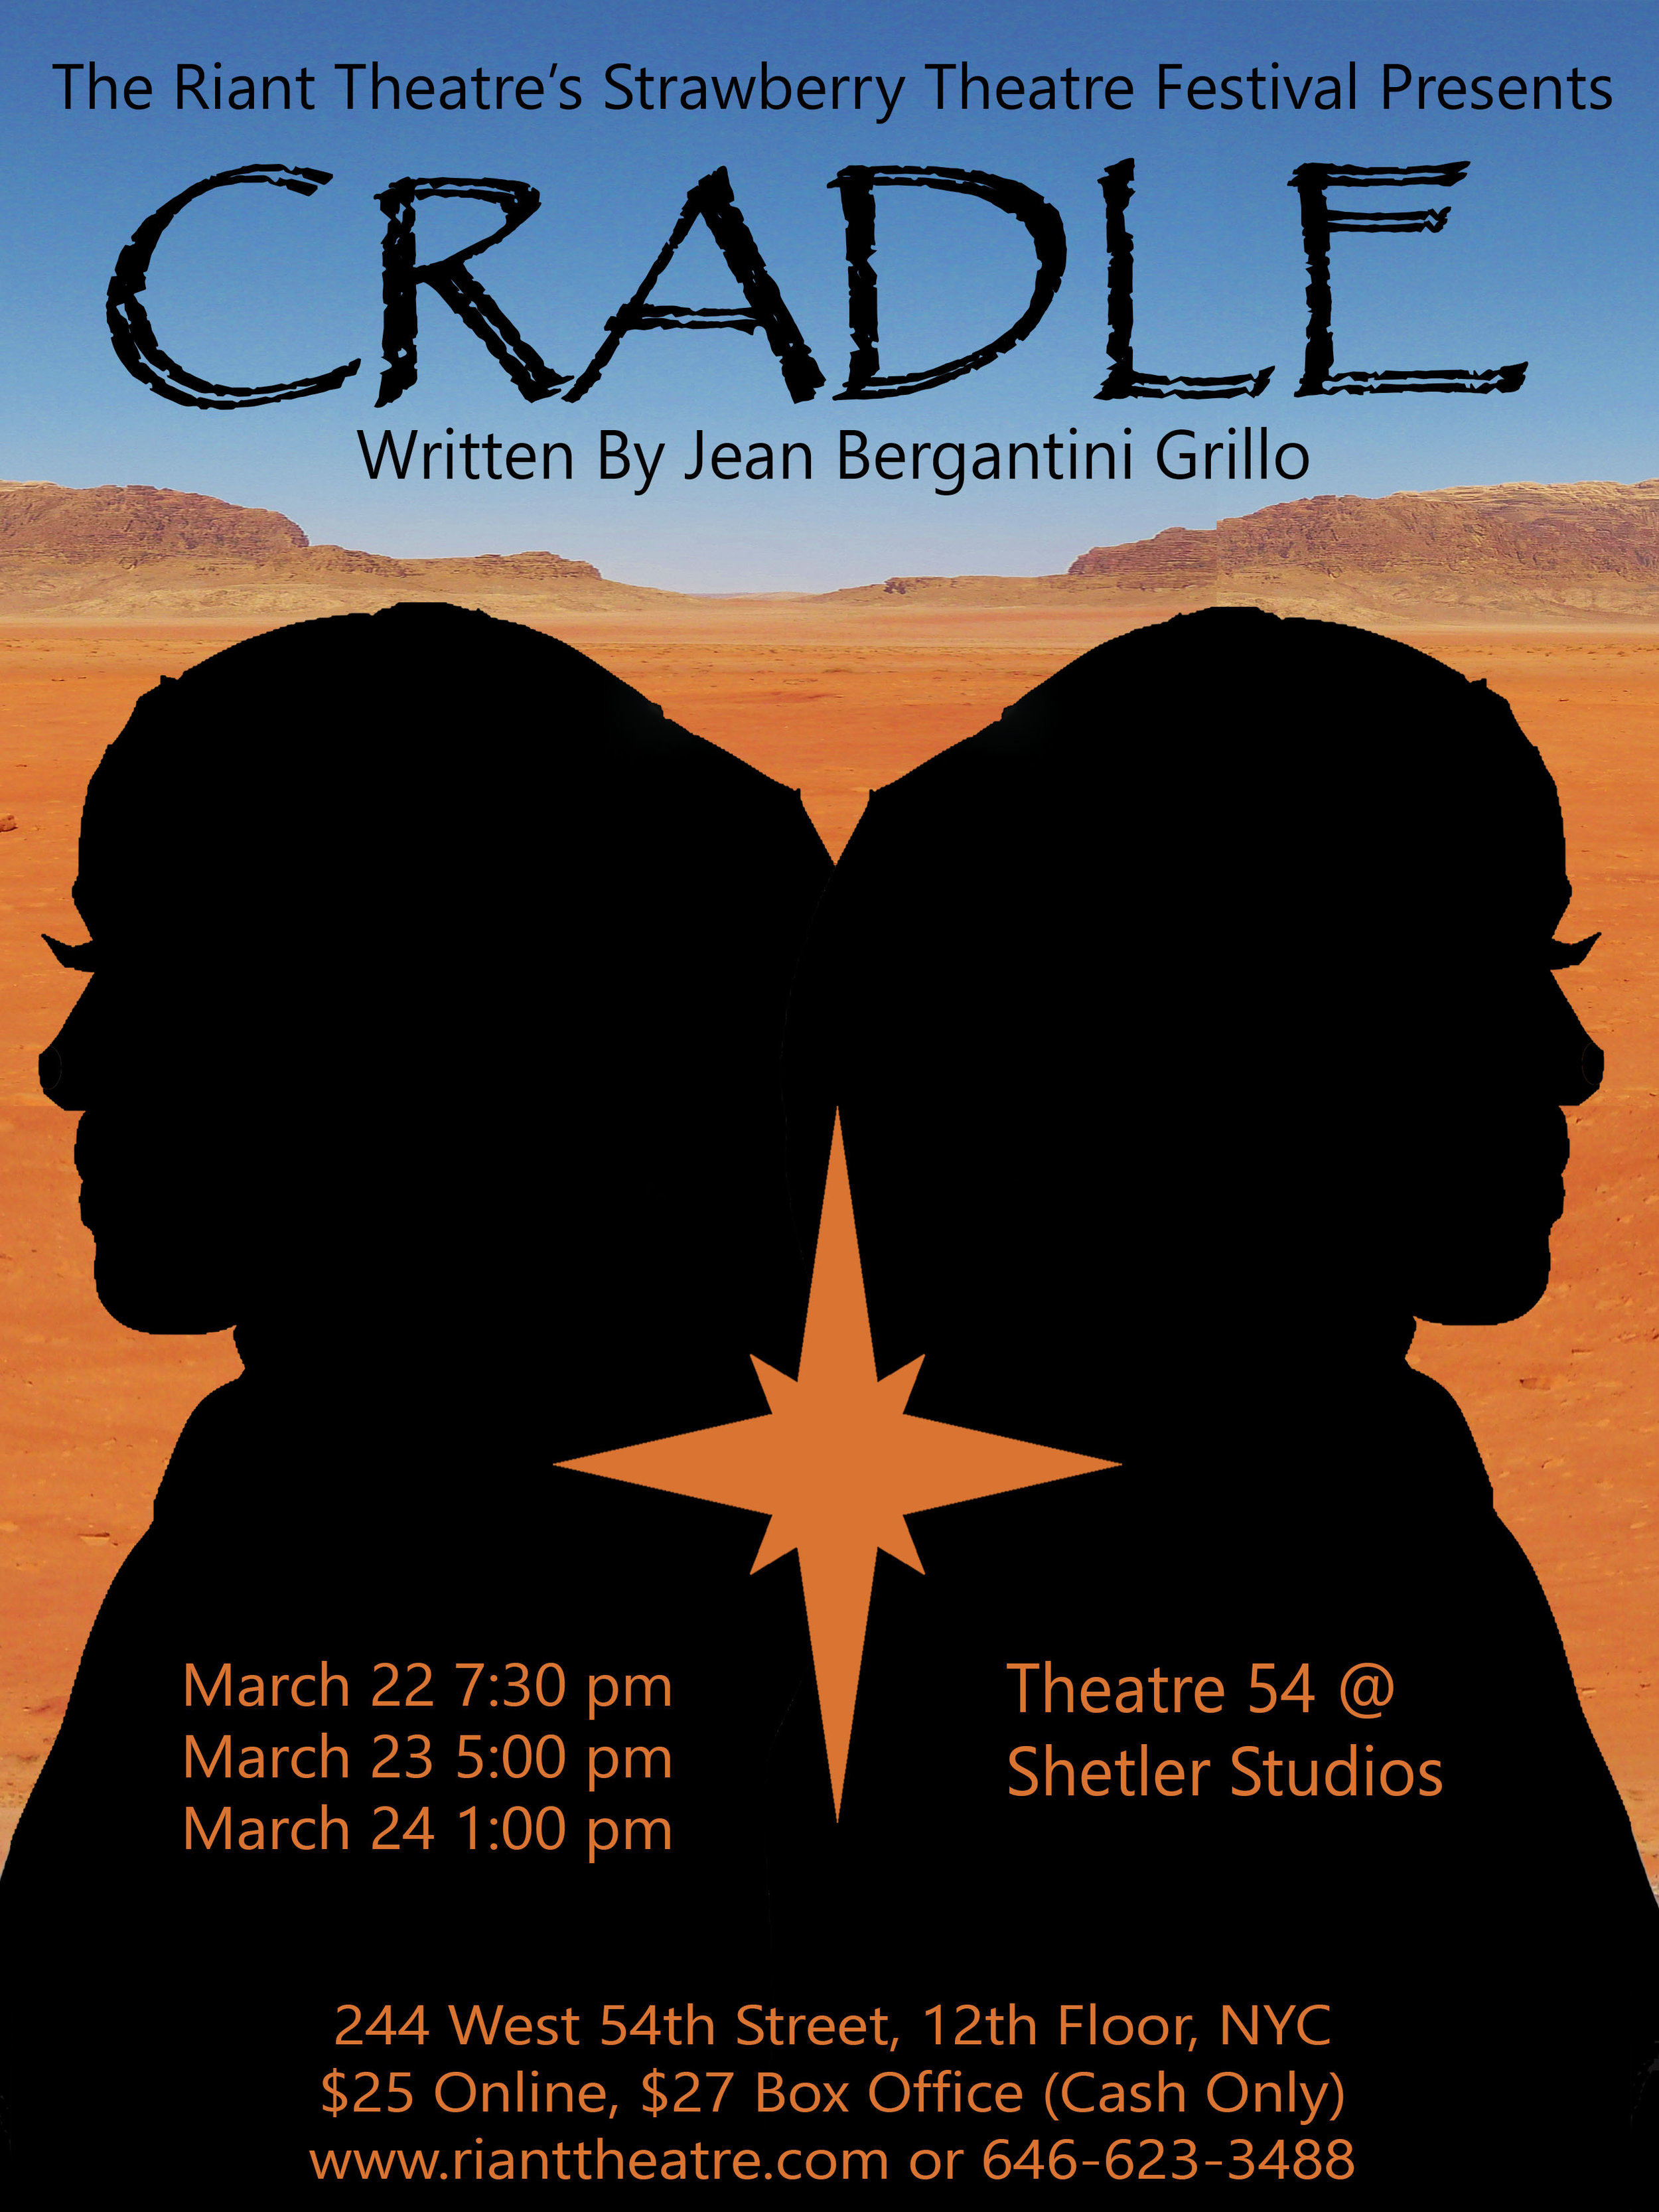 CRADLE by Jean Bergantini Grillo - A young 16 year old London Muslim student becomes infatuated with ISIS and seeks to run away and join them. Her immigrant mother, pleading to assimilate is stunned by her daughter's actions and will risk anything to stop her.Friday, March 22, 2019 at 7:30pmSaturday, March 23, 2019 at 5:00pmSunday, March 24, 2019 at 1:00pmThe Strawberry Theatre Festival At Theatre 54 @ Shetler Studios244 West 54th St, 12th Fl, NYCBetween Broadway & 8th Avenueclick for tickets